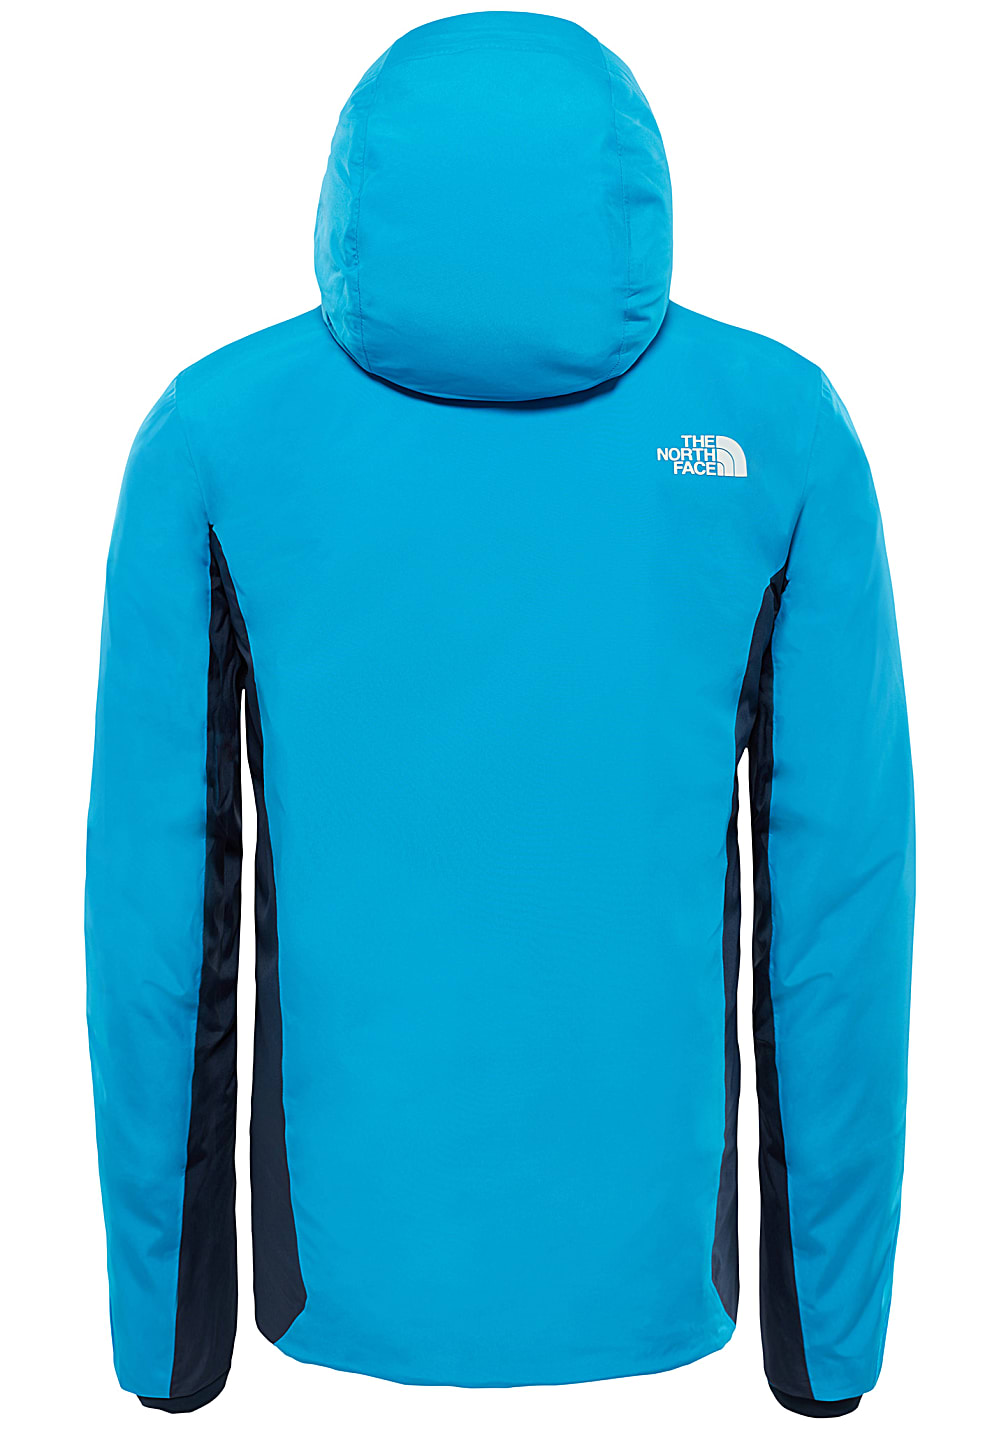 new styles 26056 5d057 THE NORTH FACE Mount Bre - Ski Jacket for Men - Blue